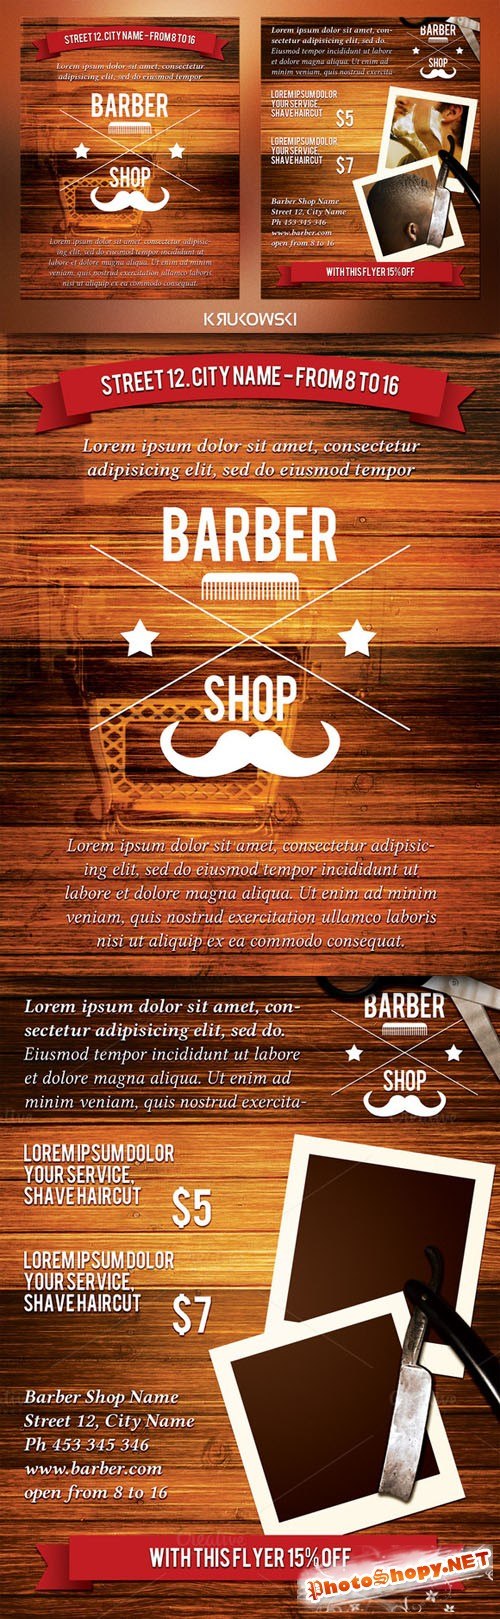 CreativeMarket - Barber Shop 2 Sided Flyer